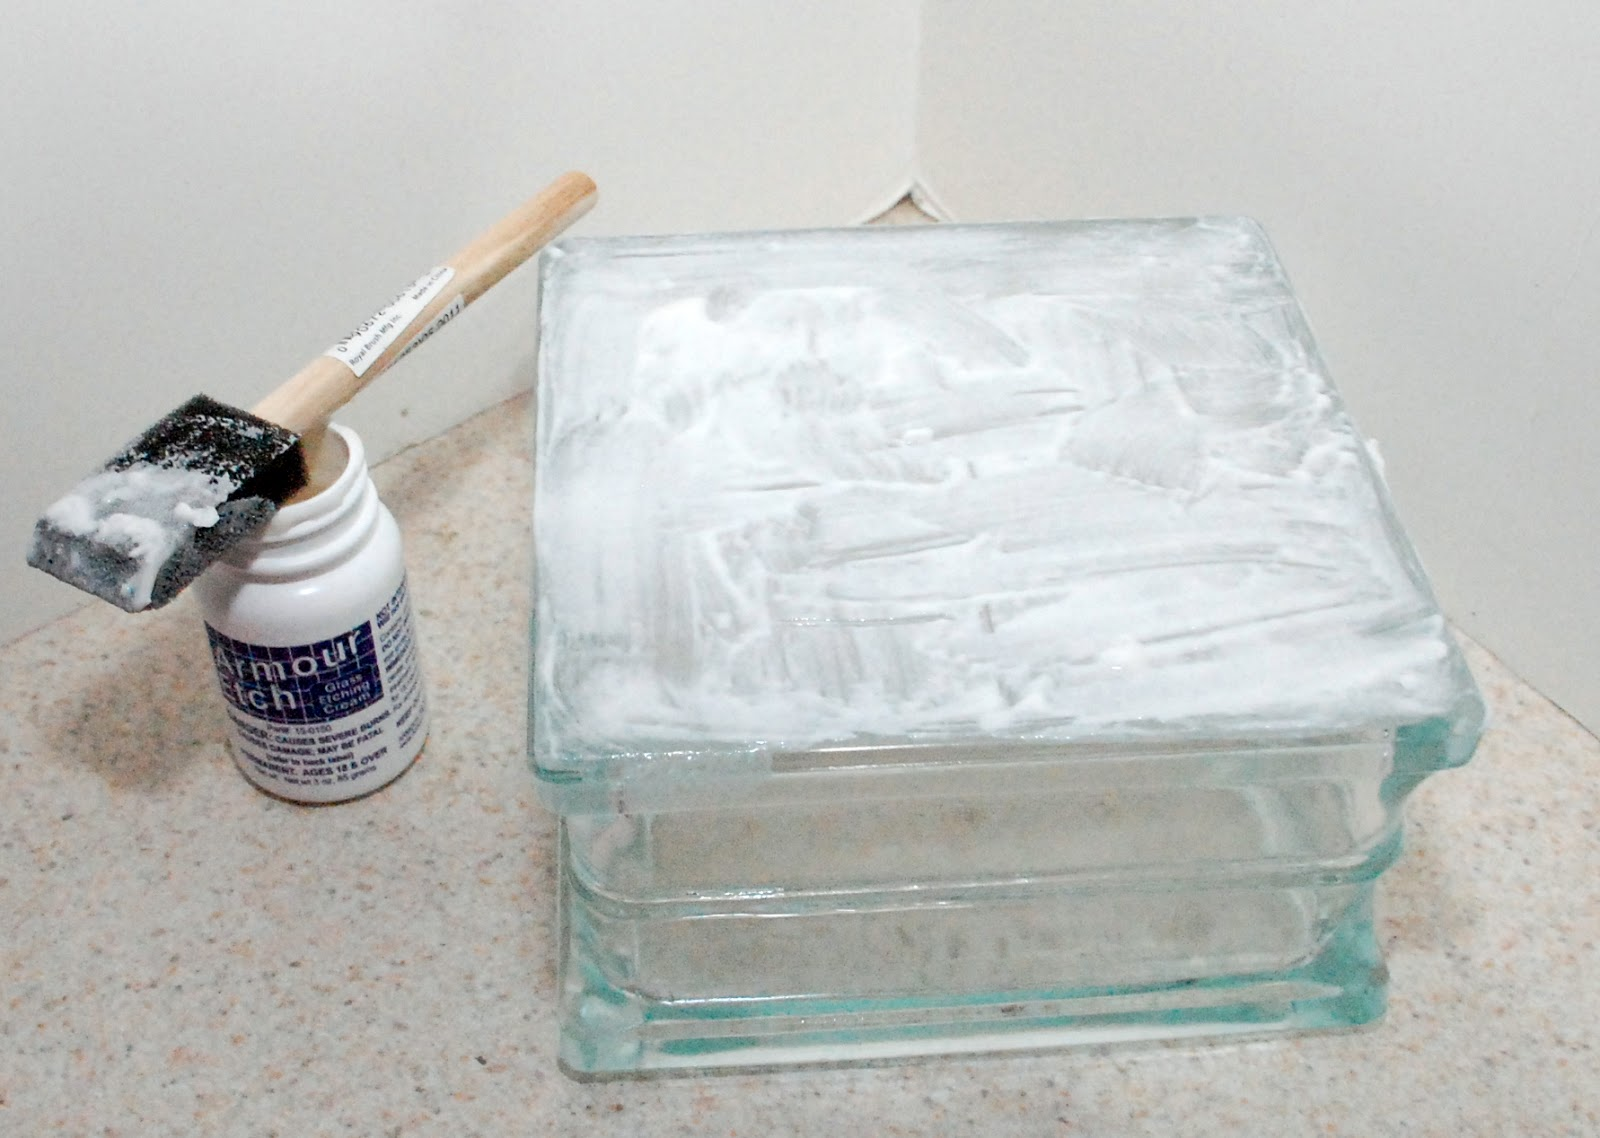 I used Armour Etch to give the glass a frosted look. I ...